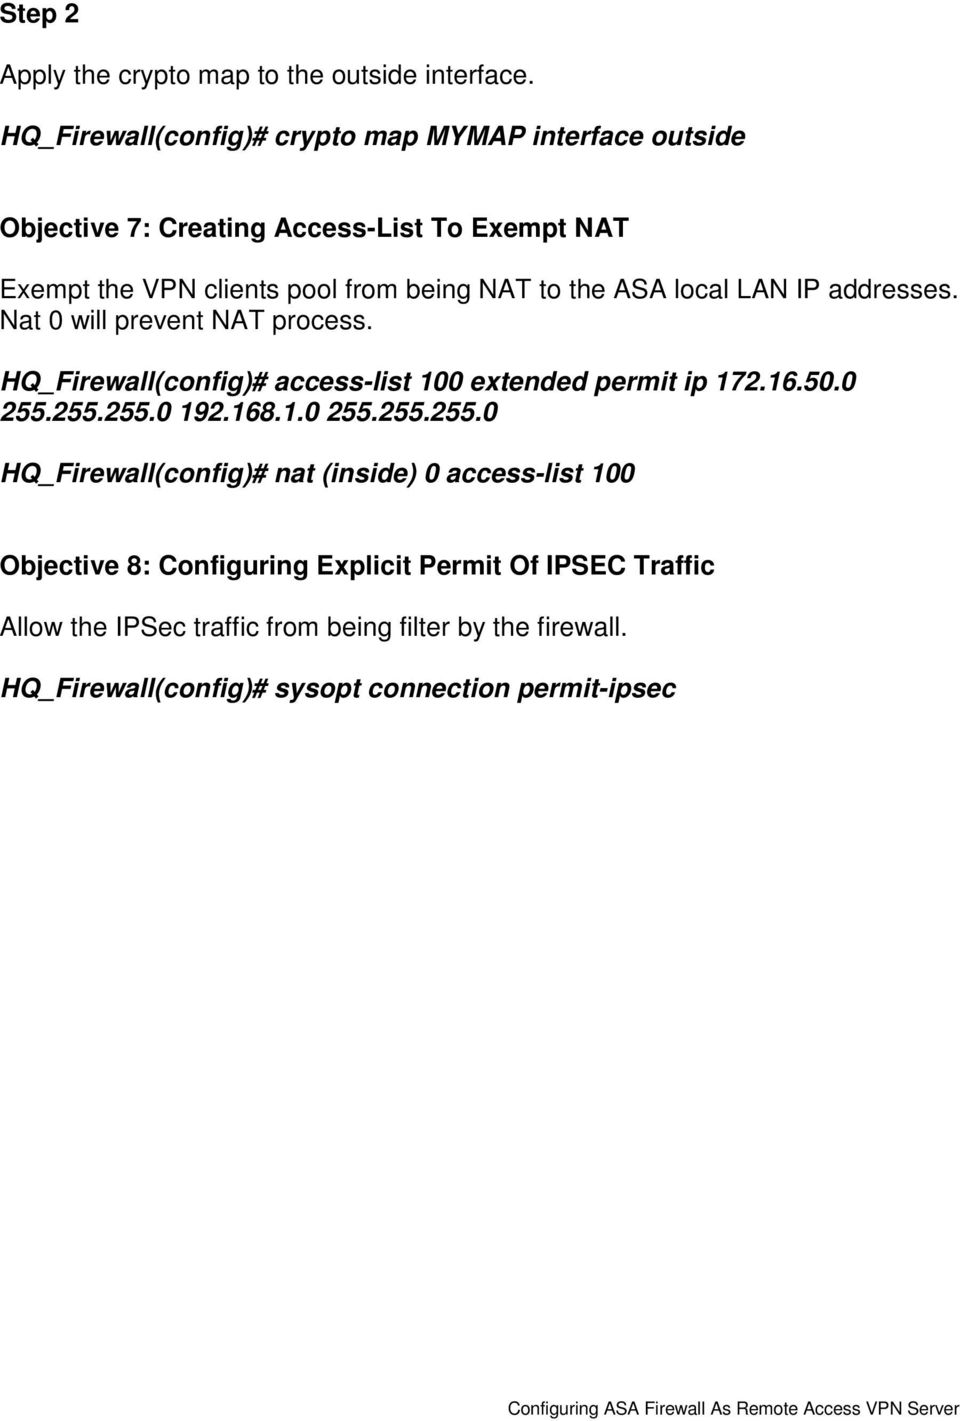 to the ASA local LAN IP addresses. Nat 0 will prevent NAT process. HQ_Firewall(config)# access-list 100 extended permit ip 172.16.50.0 255.255.255.0 192.